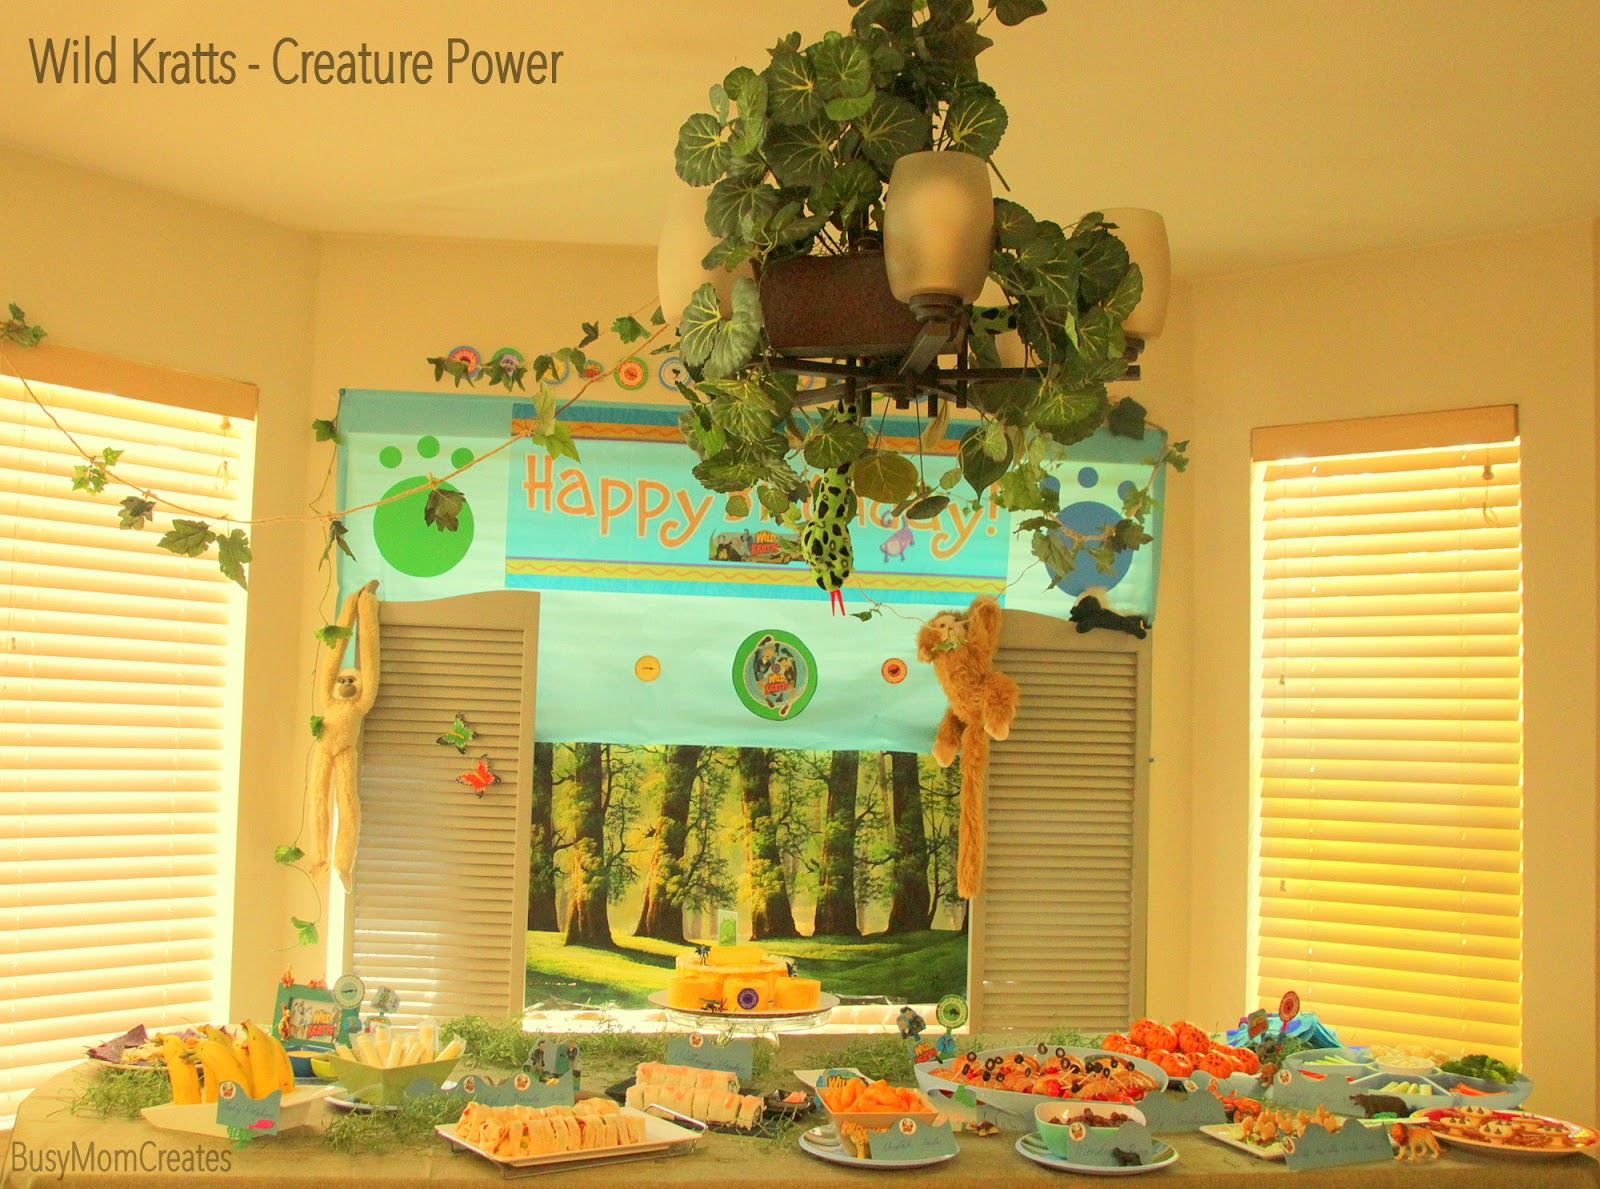 picture relating to Wild Kratts Creature Power Discs Printable referred to as Wild Kratts - Creature Electrical power themed birthday occasion